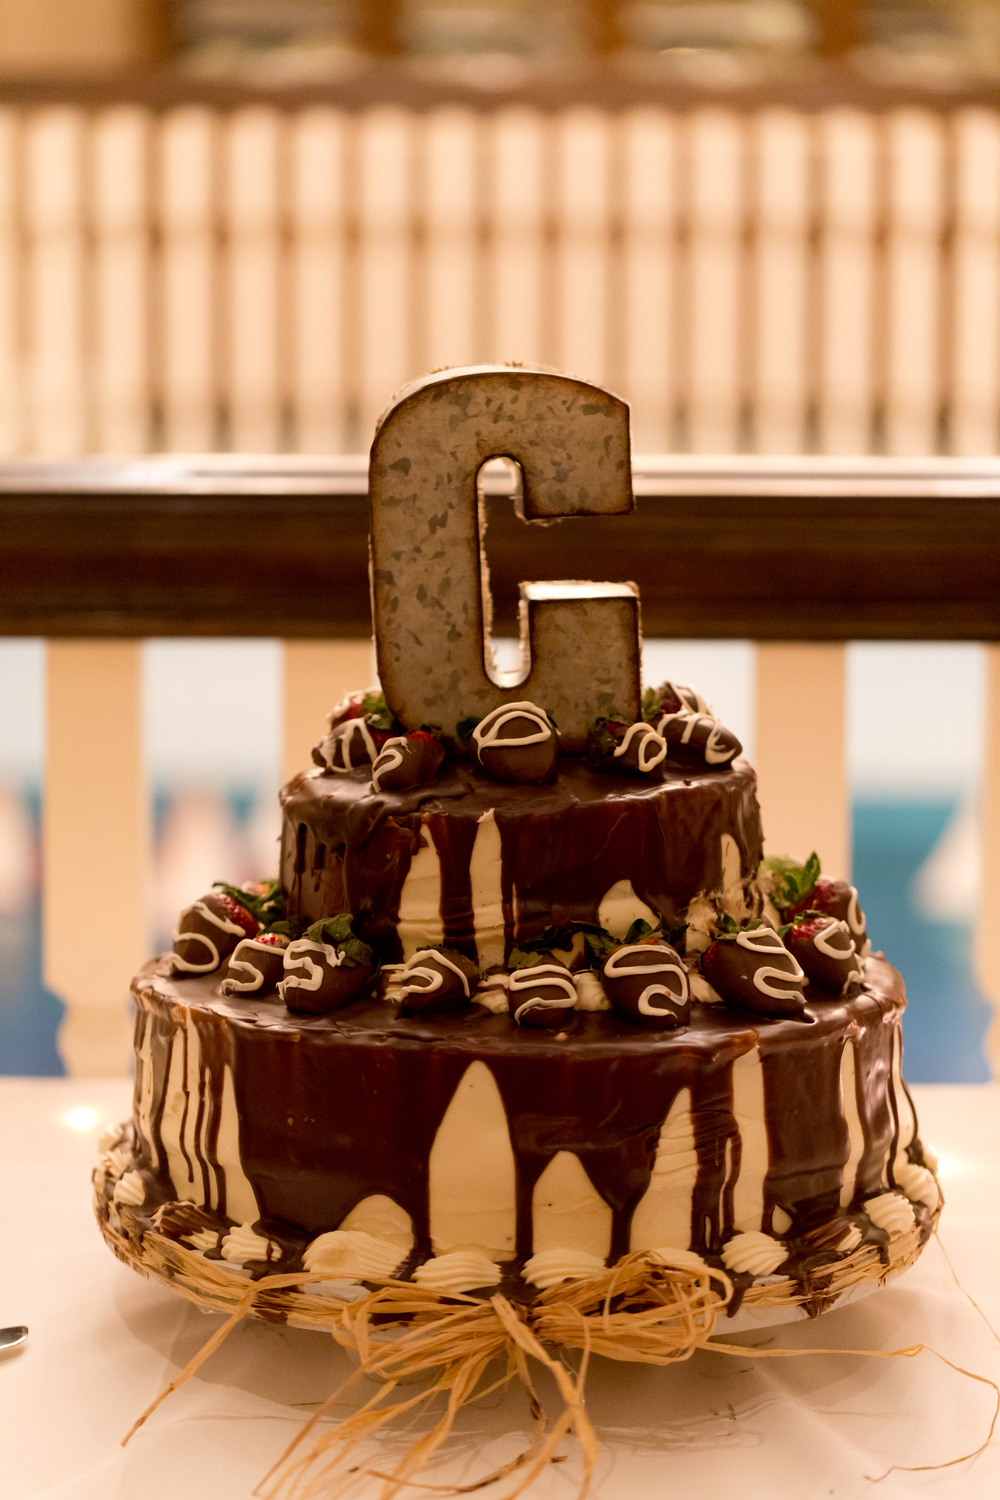 chocolate and stawberry ganache wedding cake with monogram C initial cake topper